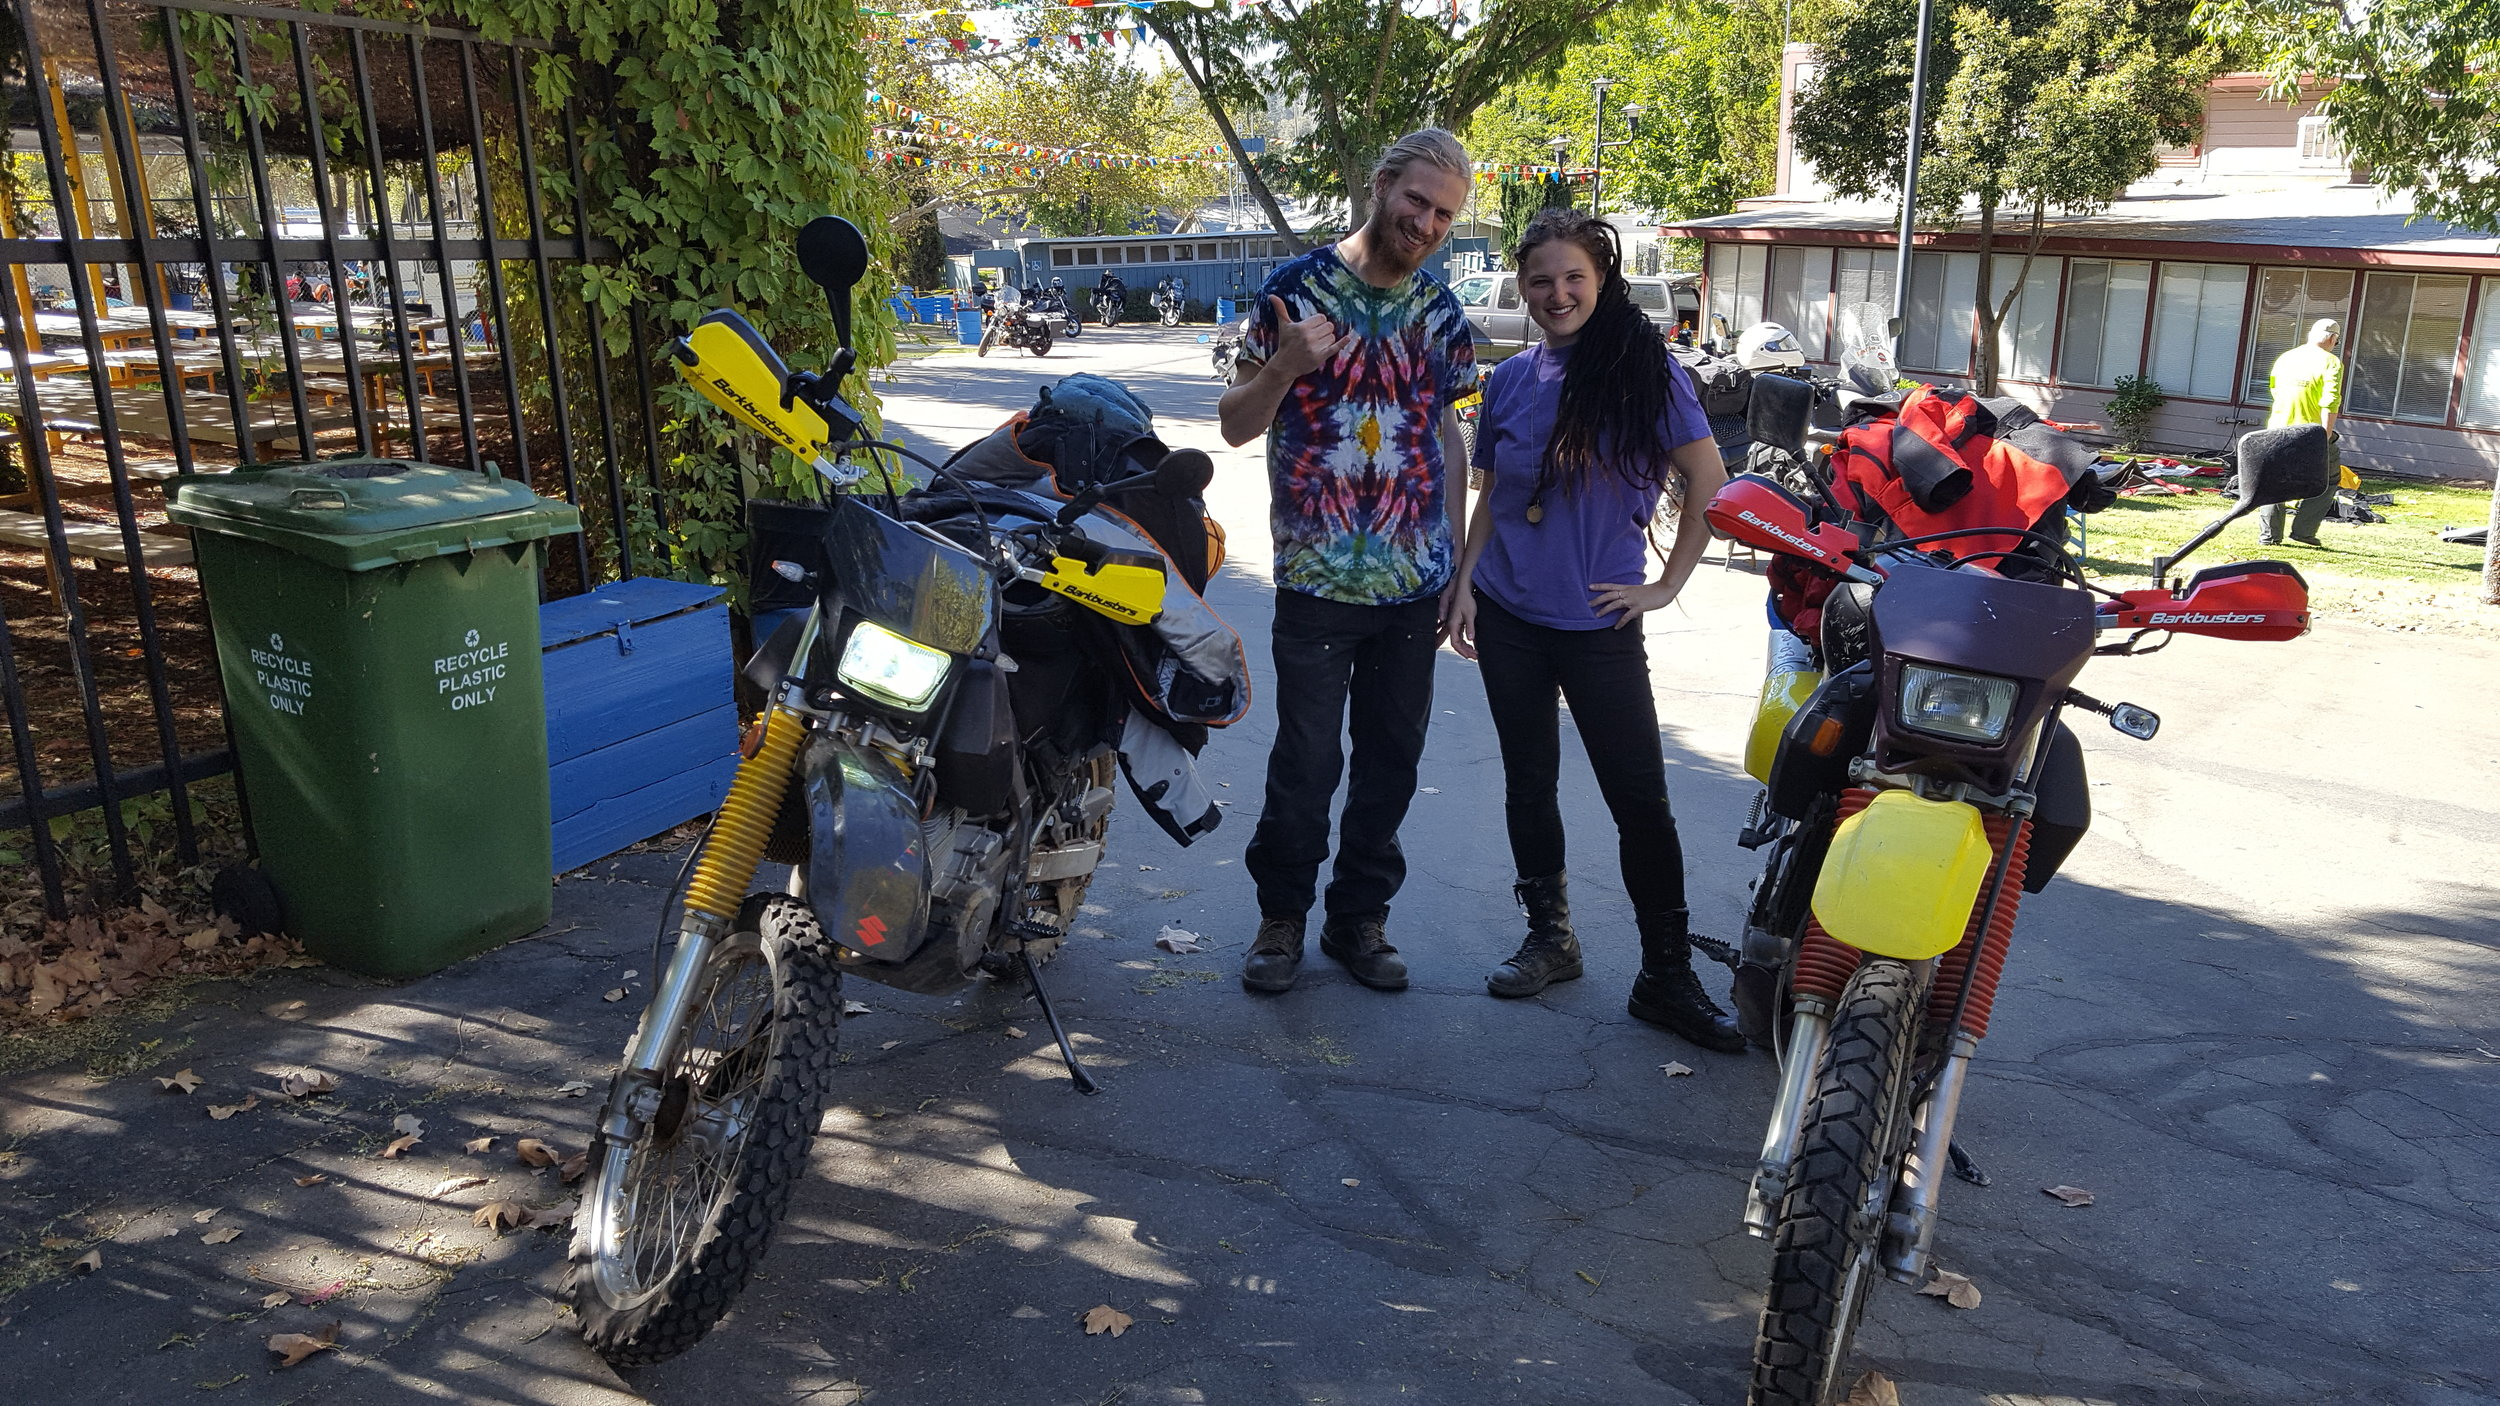 Alex and Chelsea. These guys set off soon on a five year epic journey around the world. Good luck guys and see you on the road somewhere .